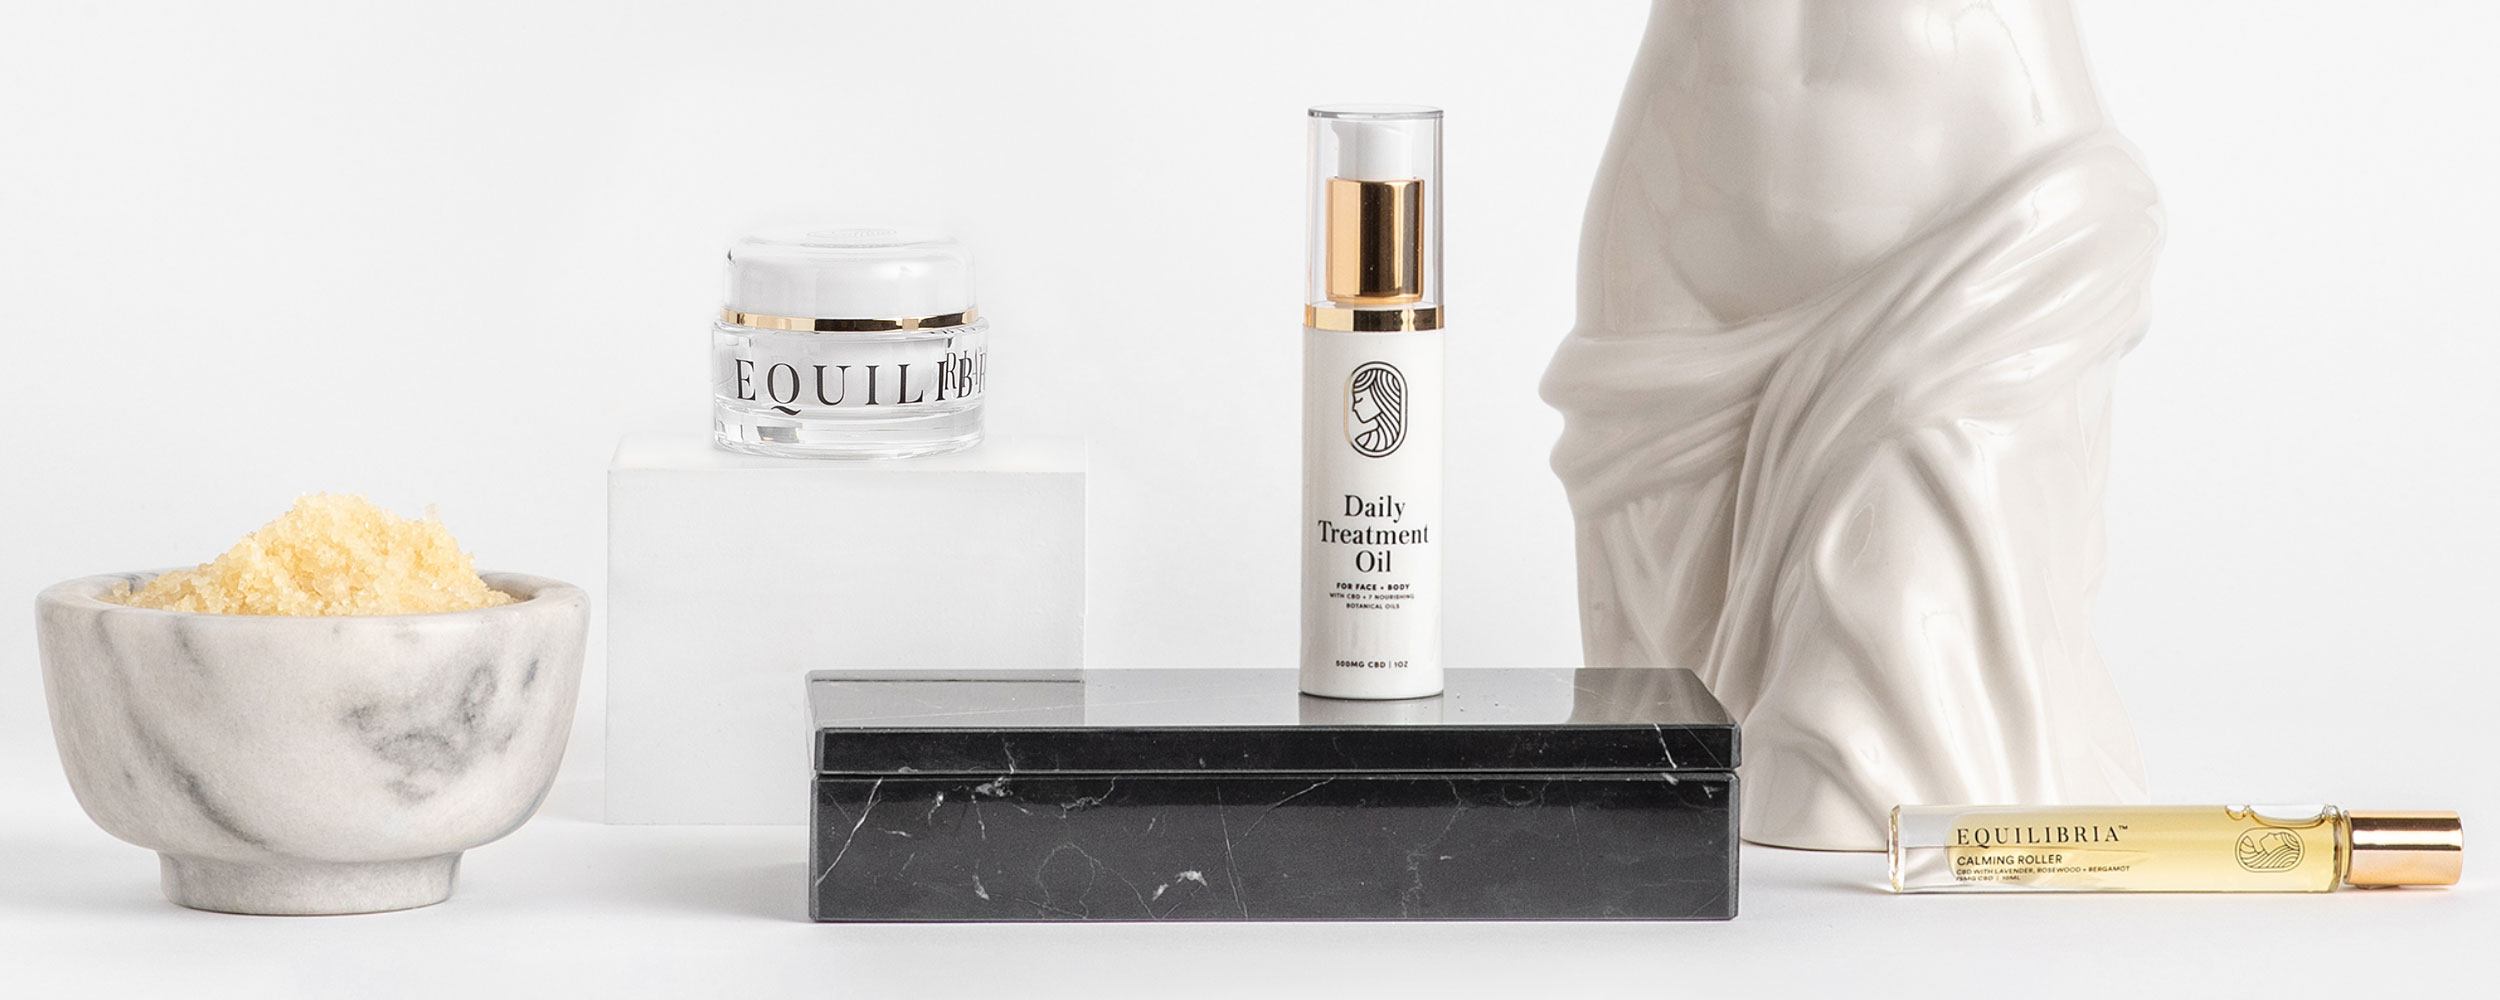 4 Powerful Products to Add CBD Into Your Skincare Routine